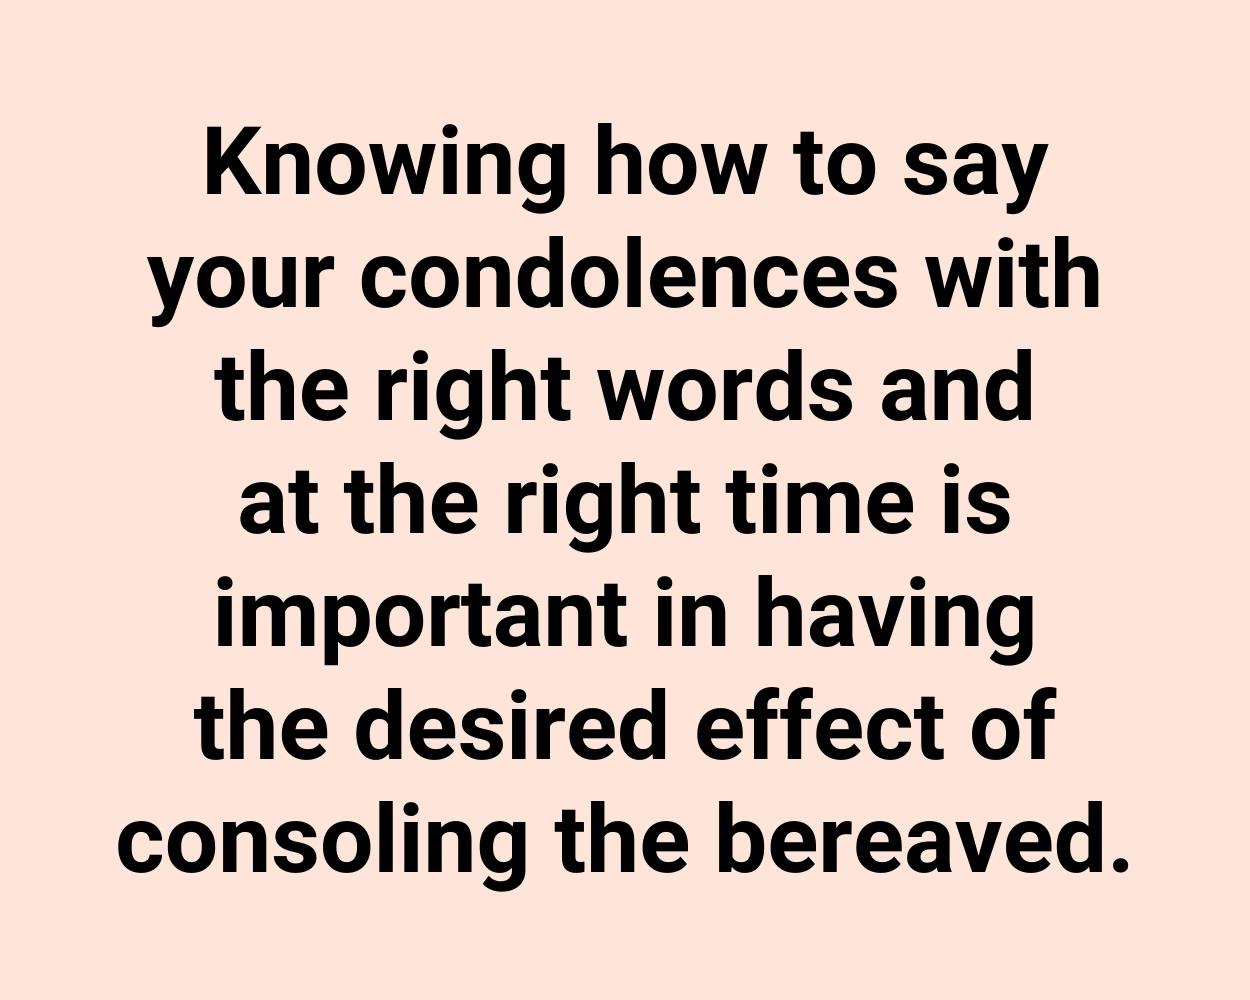 Knowing how to say your condolences with the right words and at the right time is important in having the desired effect of consoling the bereaved.